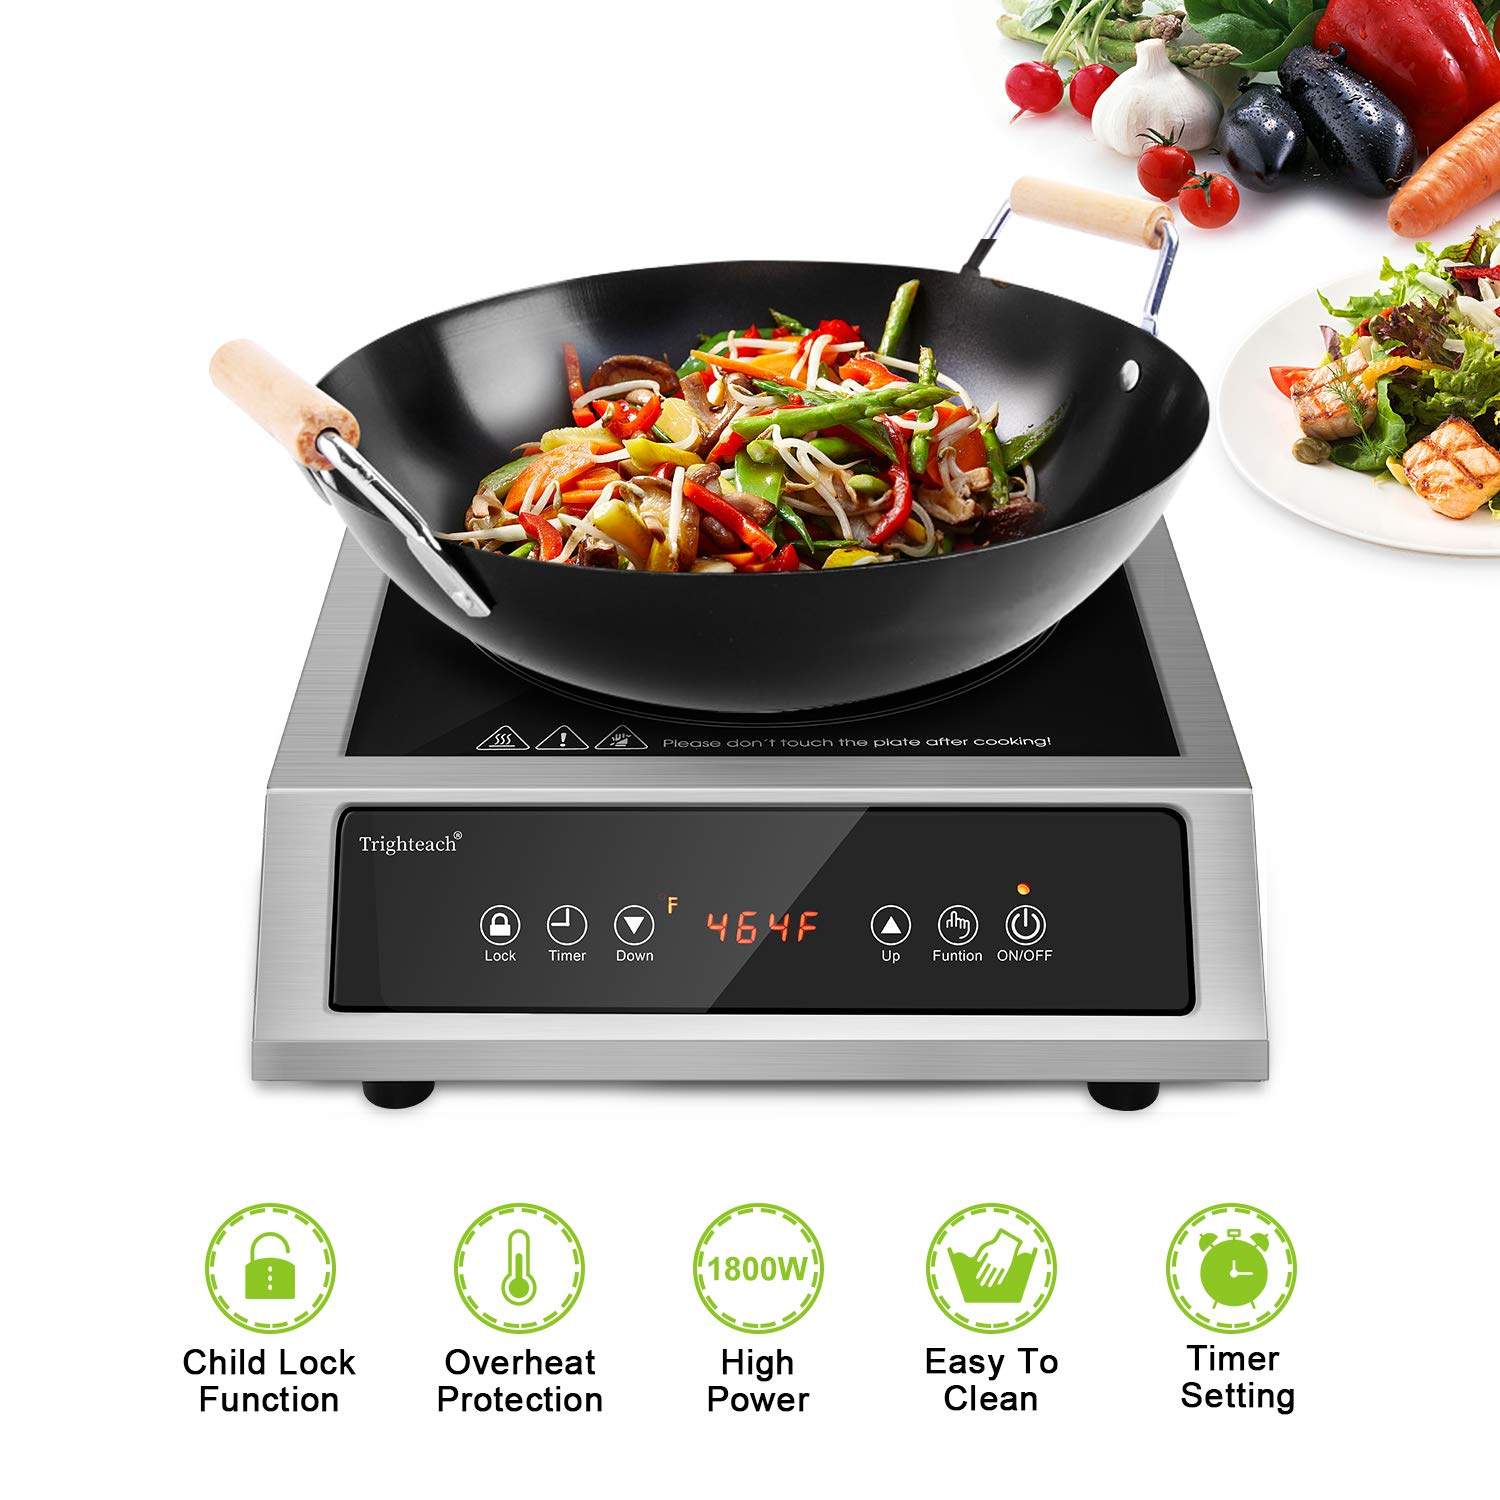 Trighteach Professional Portable Induction Cooktop, 1800W Single Countertop Burner, Commercial Powerful Electric Stove with Stainless Steel Shell, Greater Load-bearing Capacity